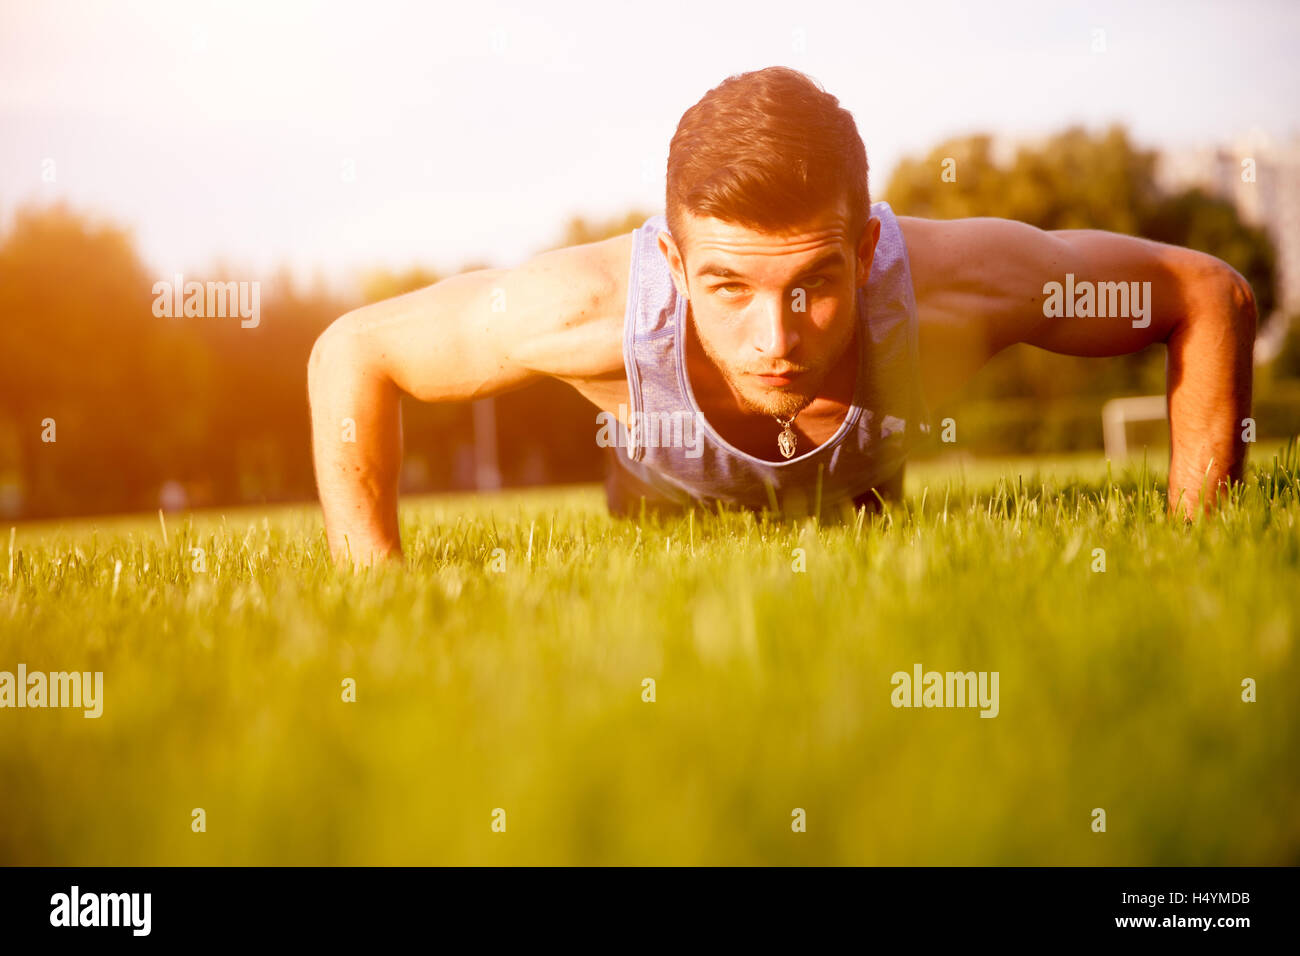 Young athletic guy in blue shirt press ups outdoors - Stock Image